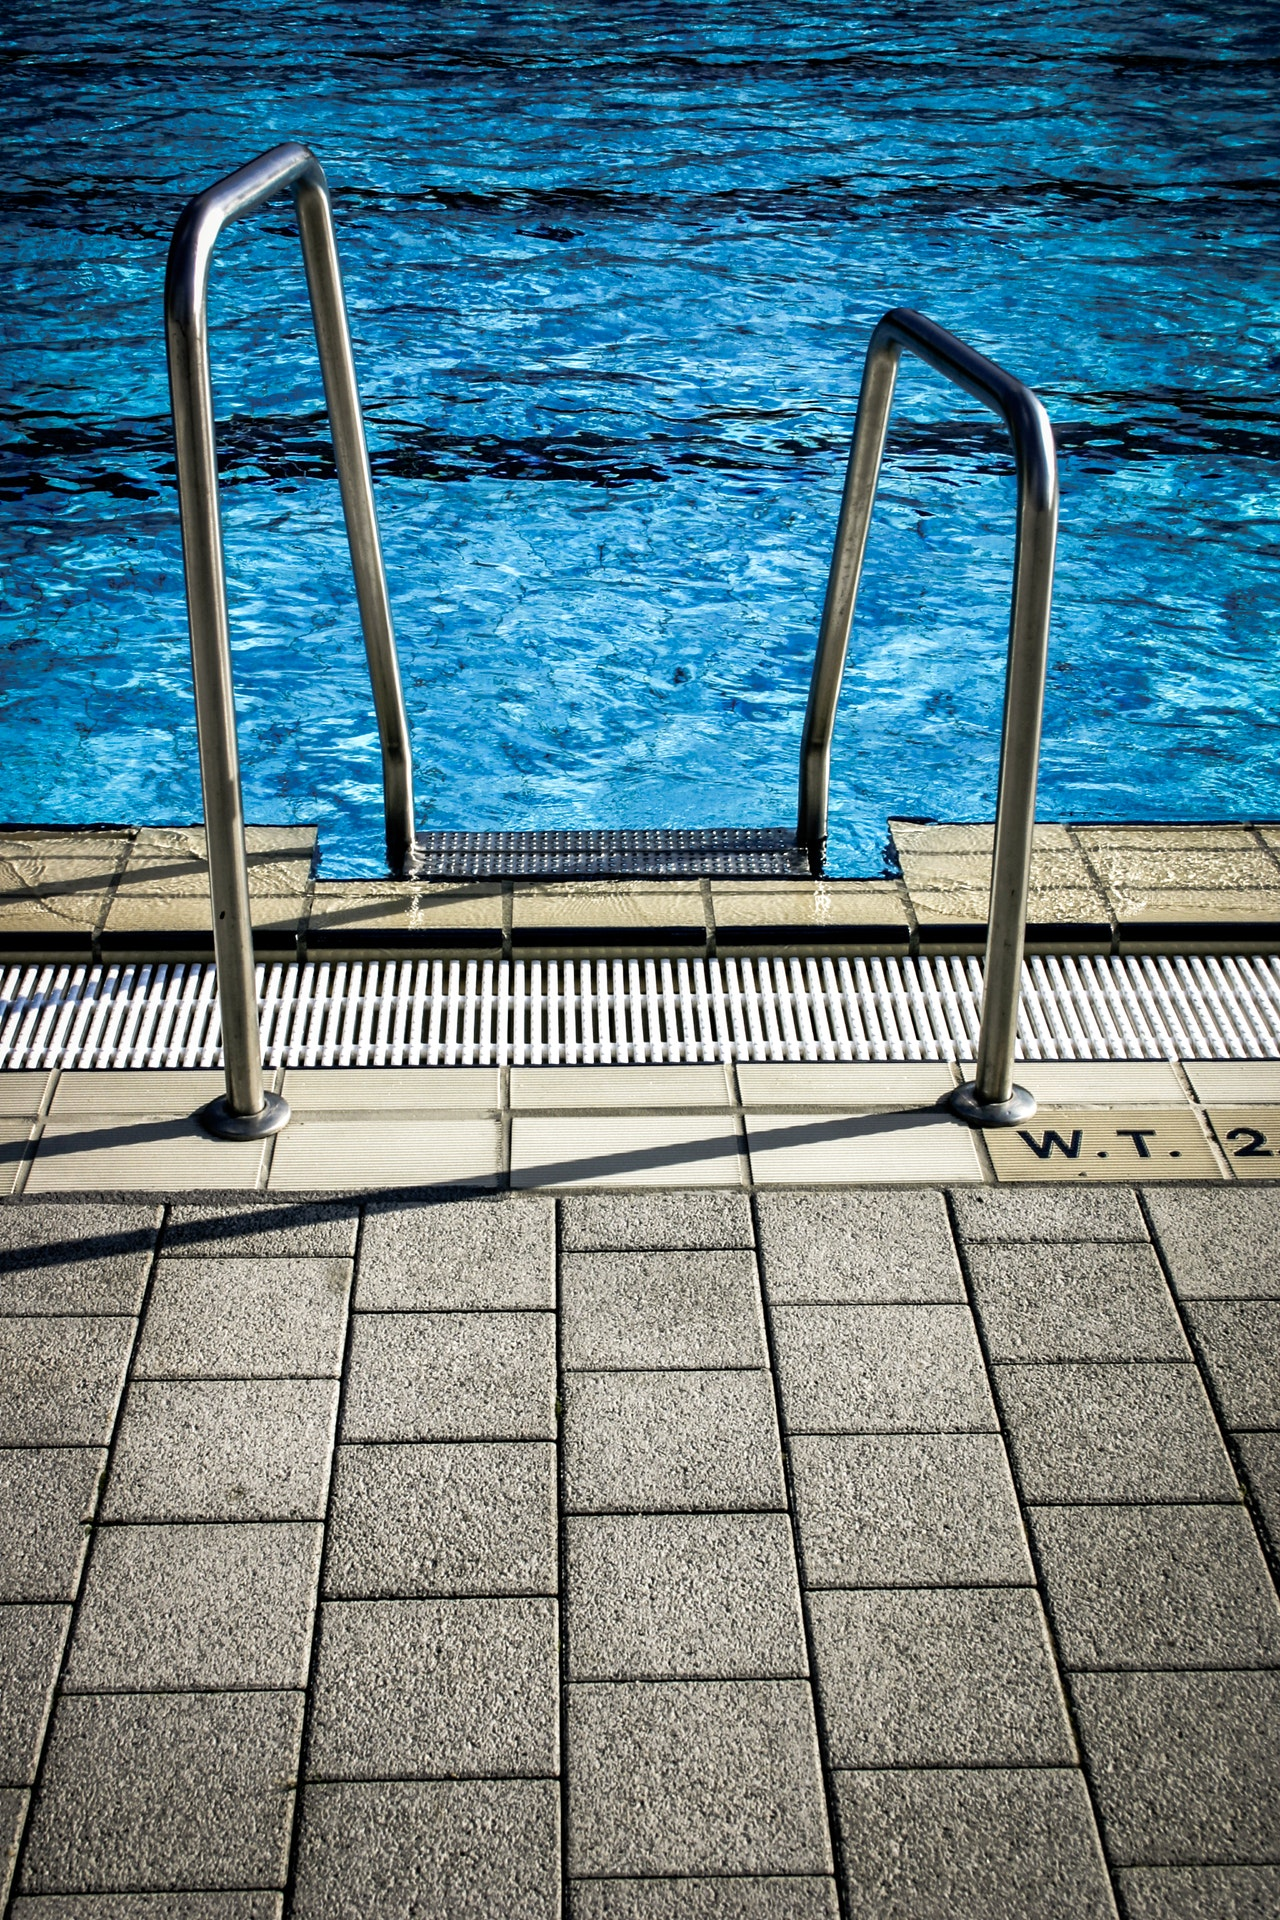 Things Know Swimming Pool Article Image